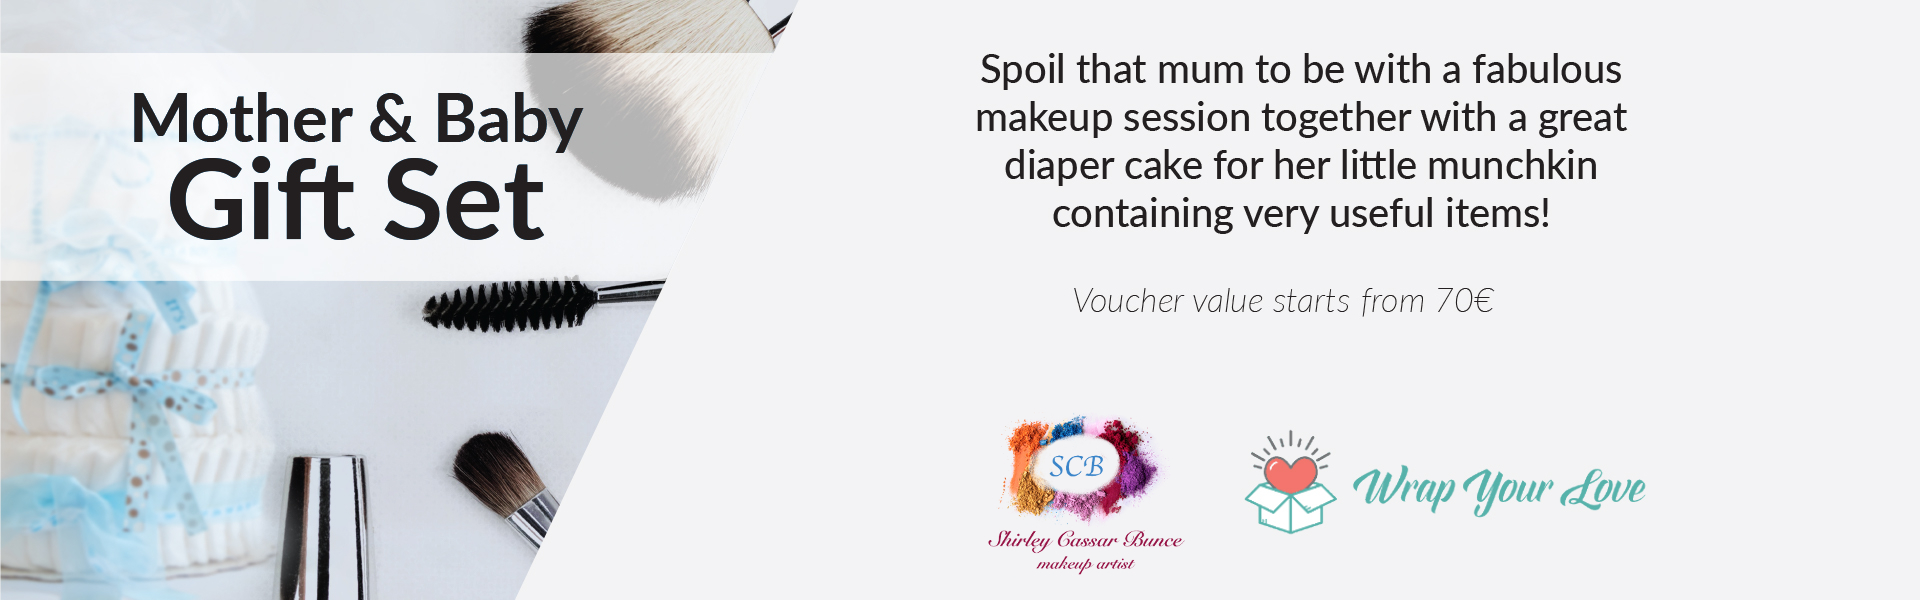 Mum and Baby Gift Set by Wrap Your Love 1920x600